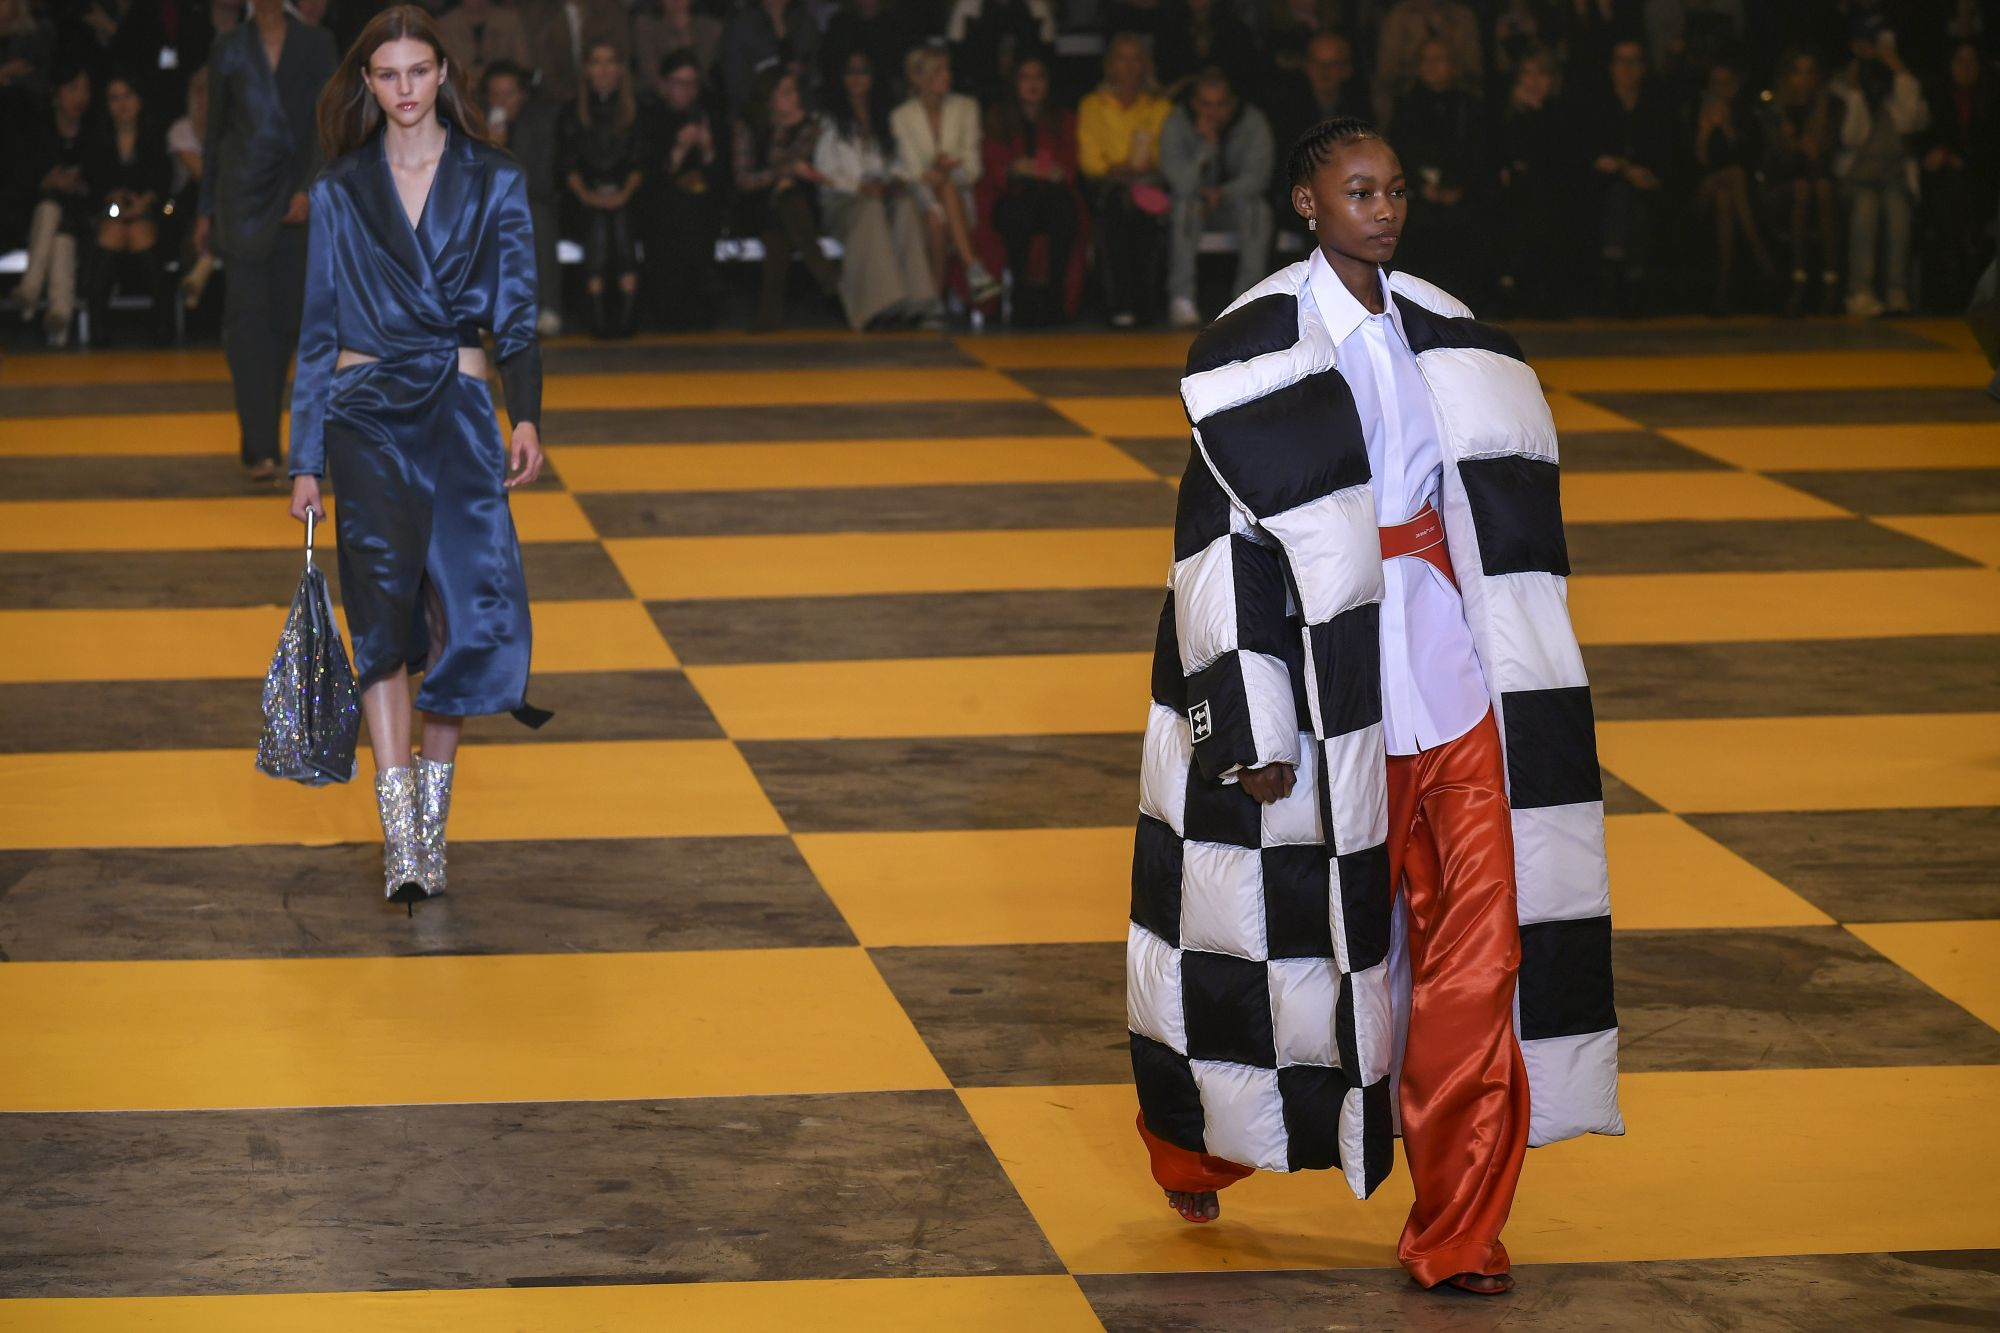 Models present creations by Off-White during the Women's Fall-Winter 2019/2020 Ready-to-Wear collection fashion show in Paris, on February 28, 2019. (Photo by Philippe LOPEZ / AFP)